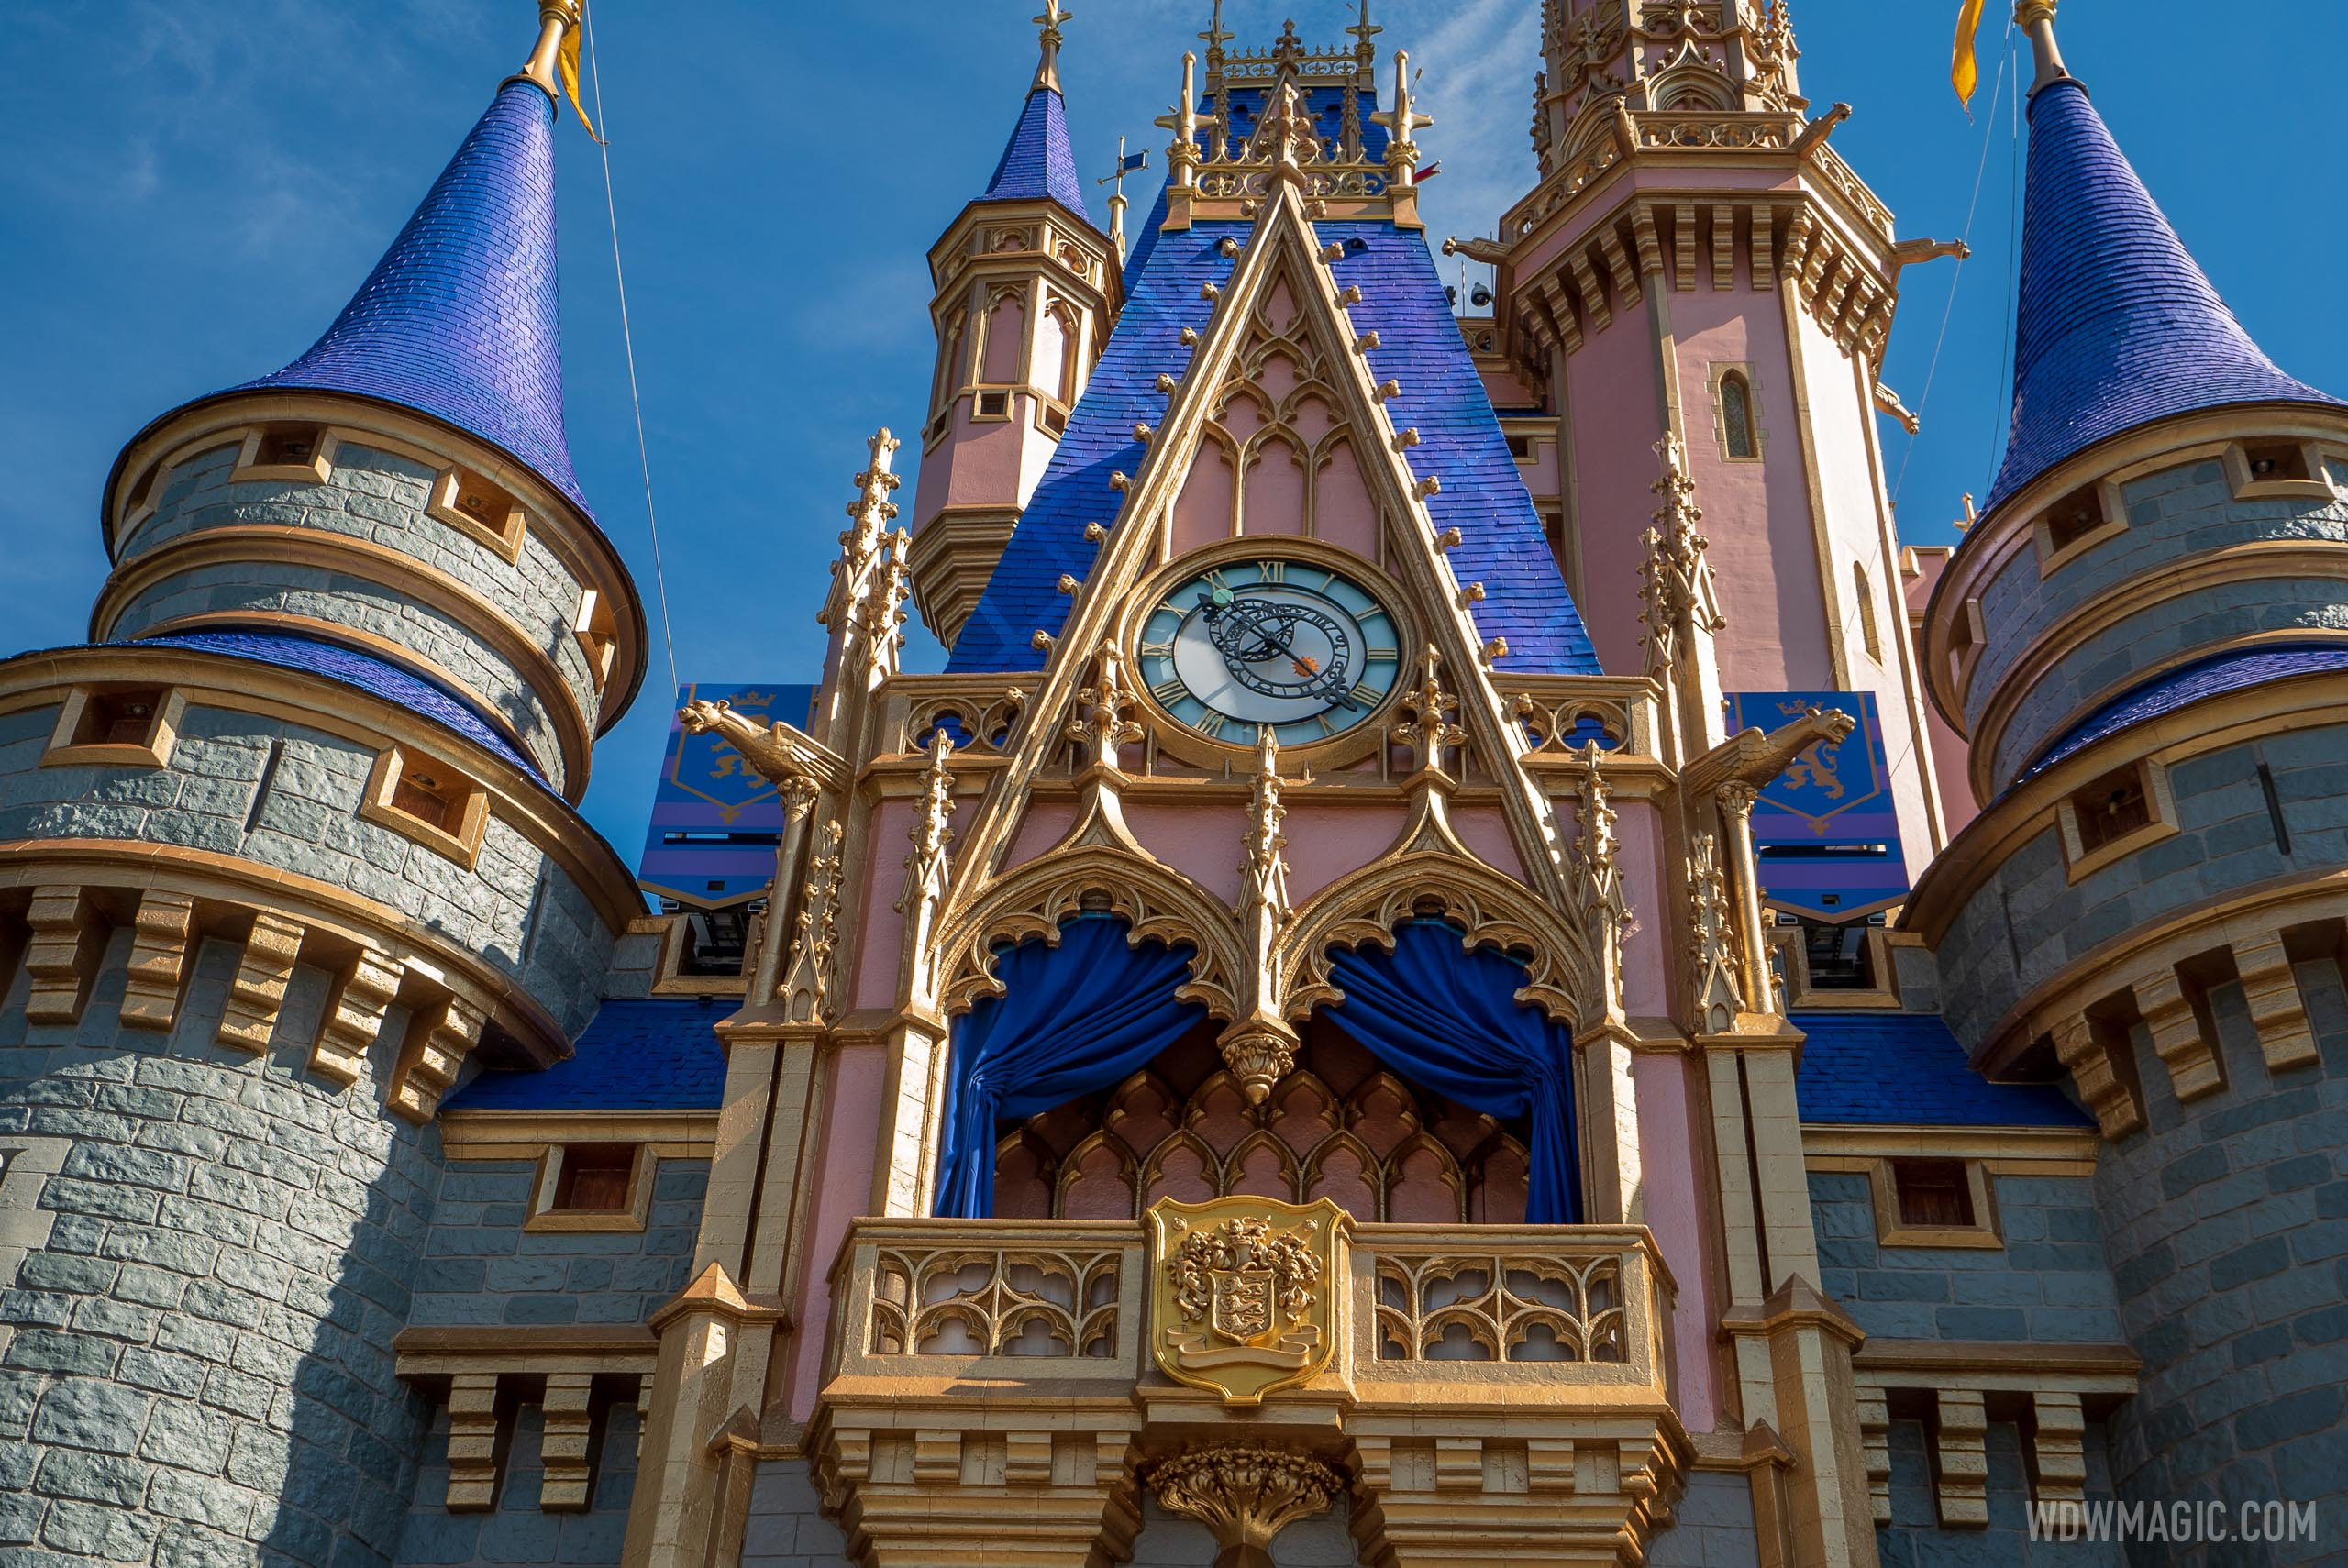 The new look is inspired by Cinderella Castle